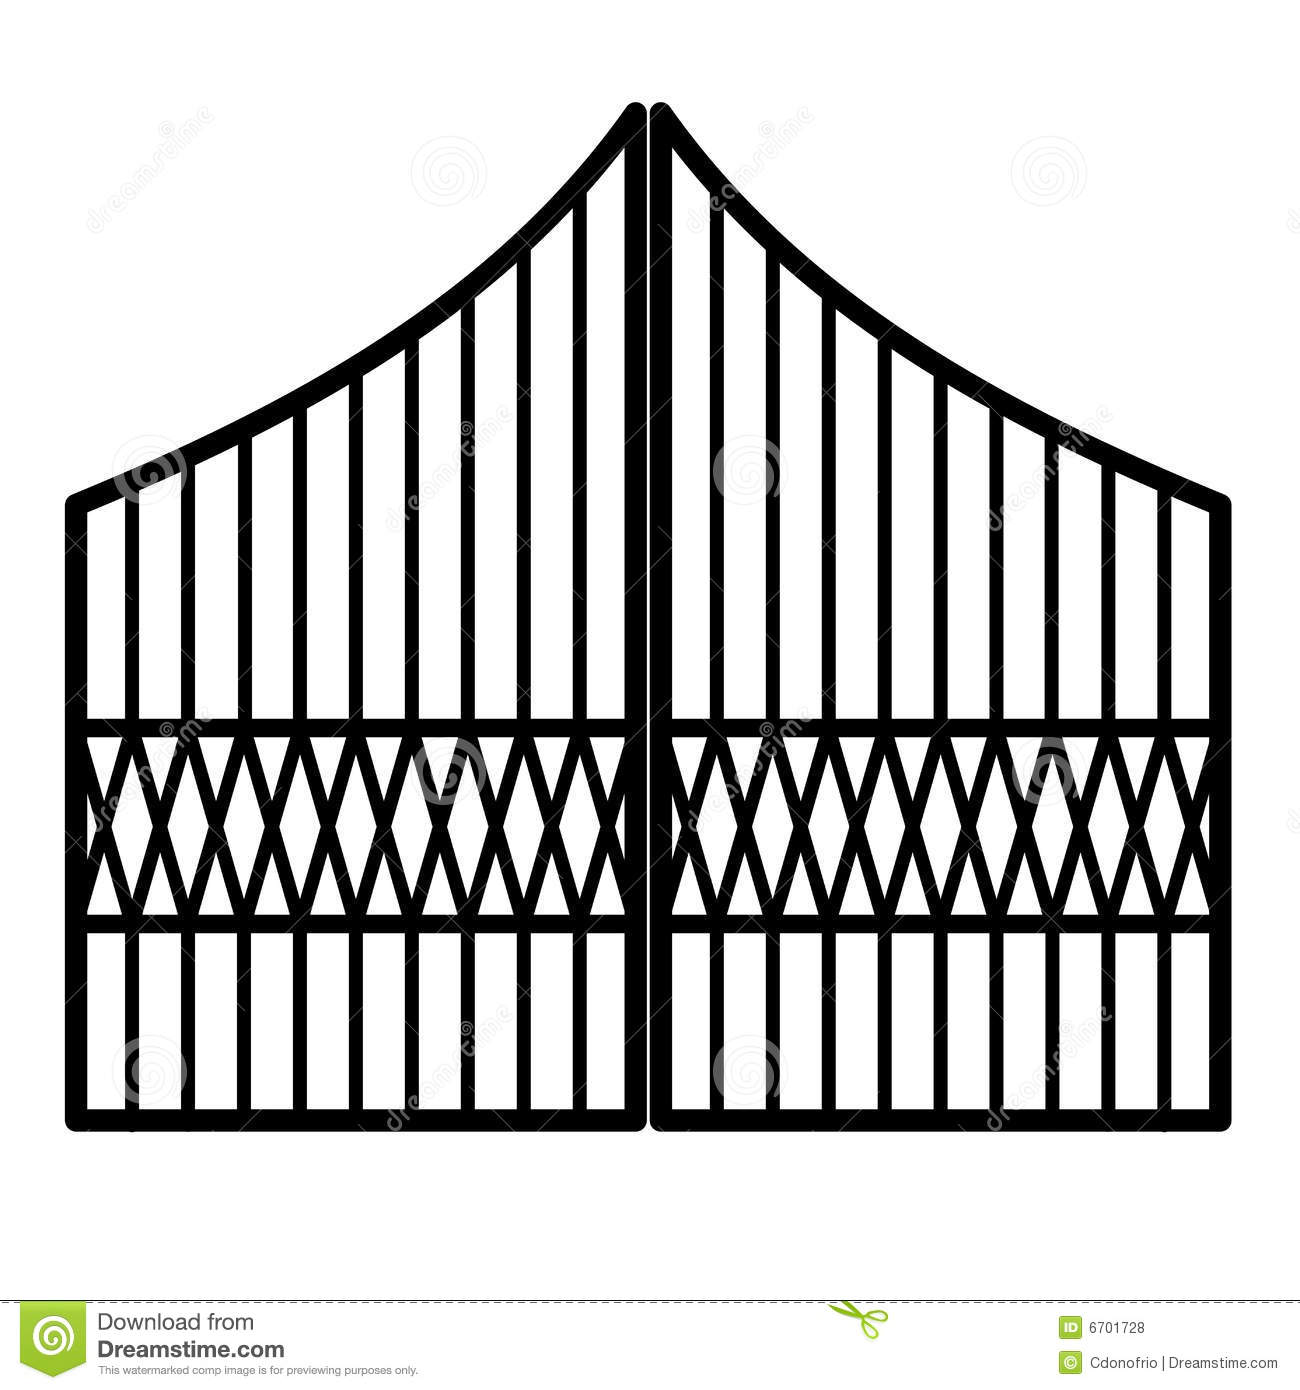 Iron gates clipart.